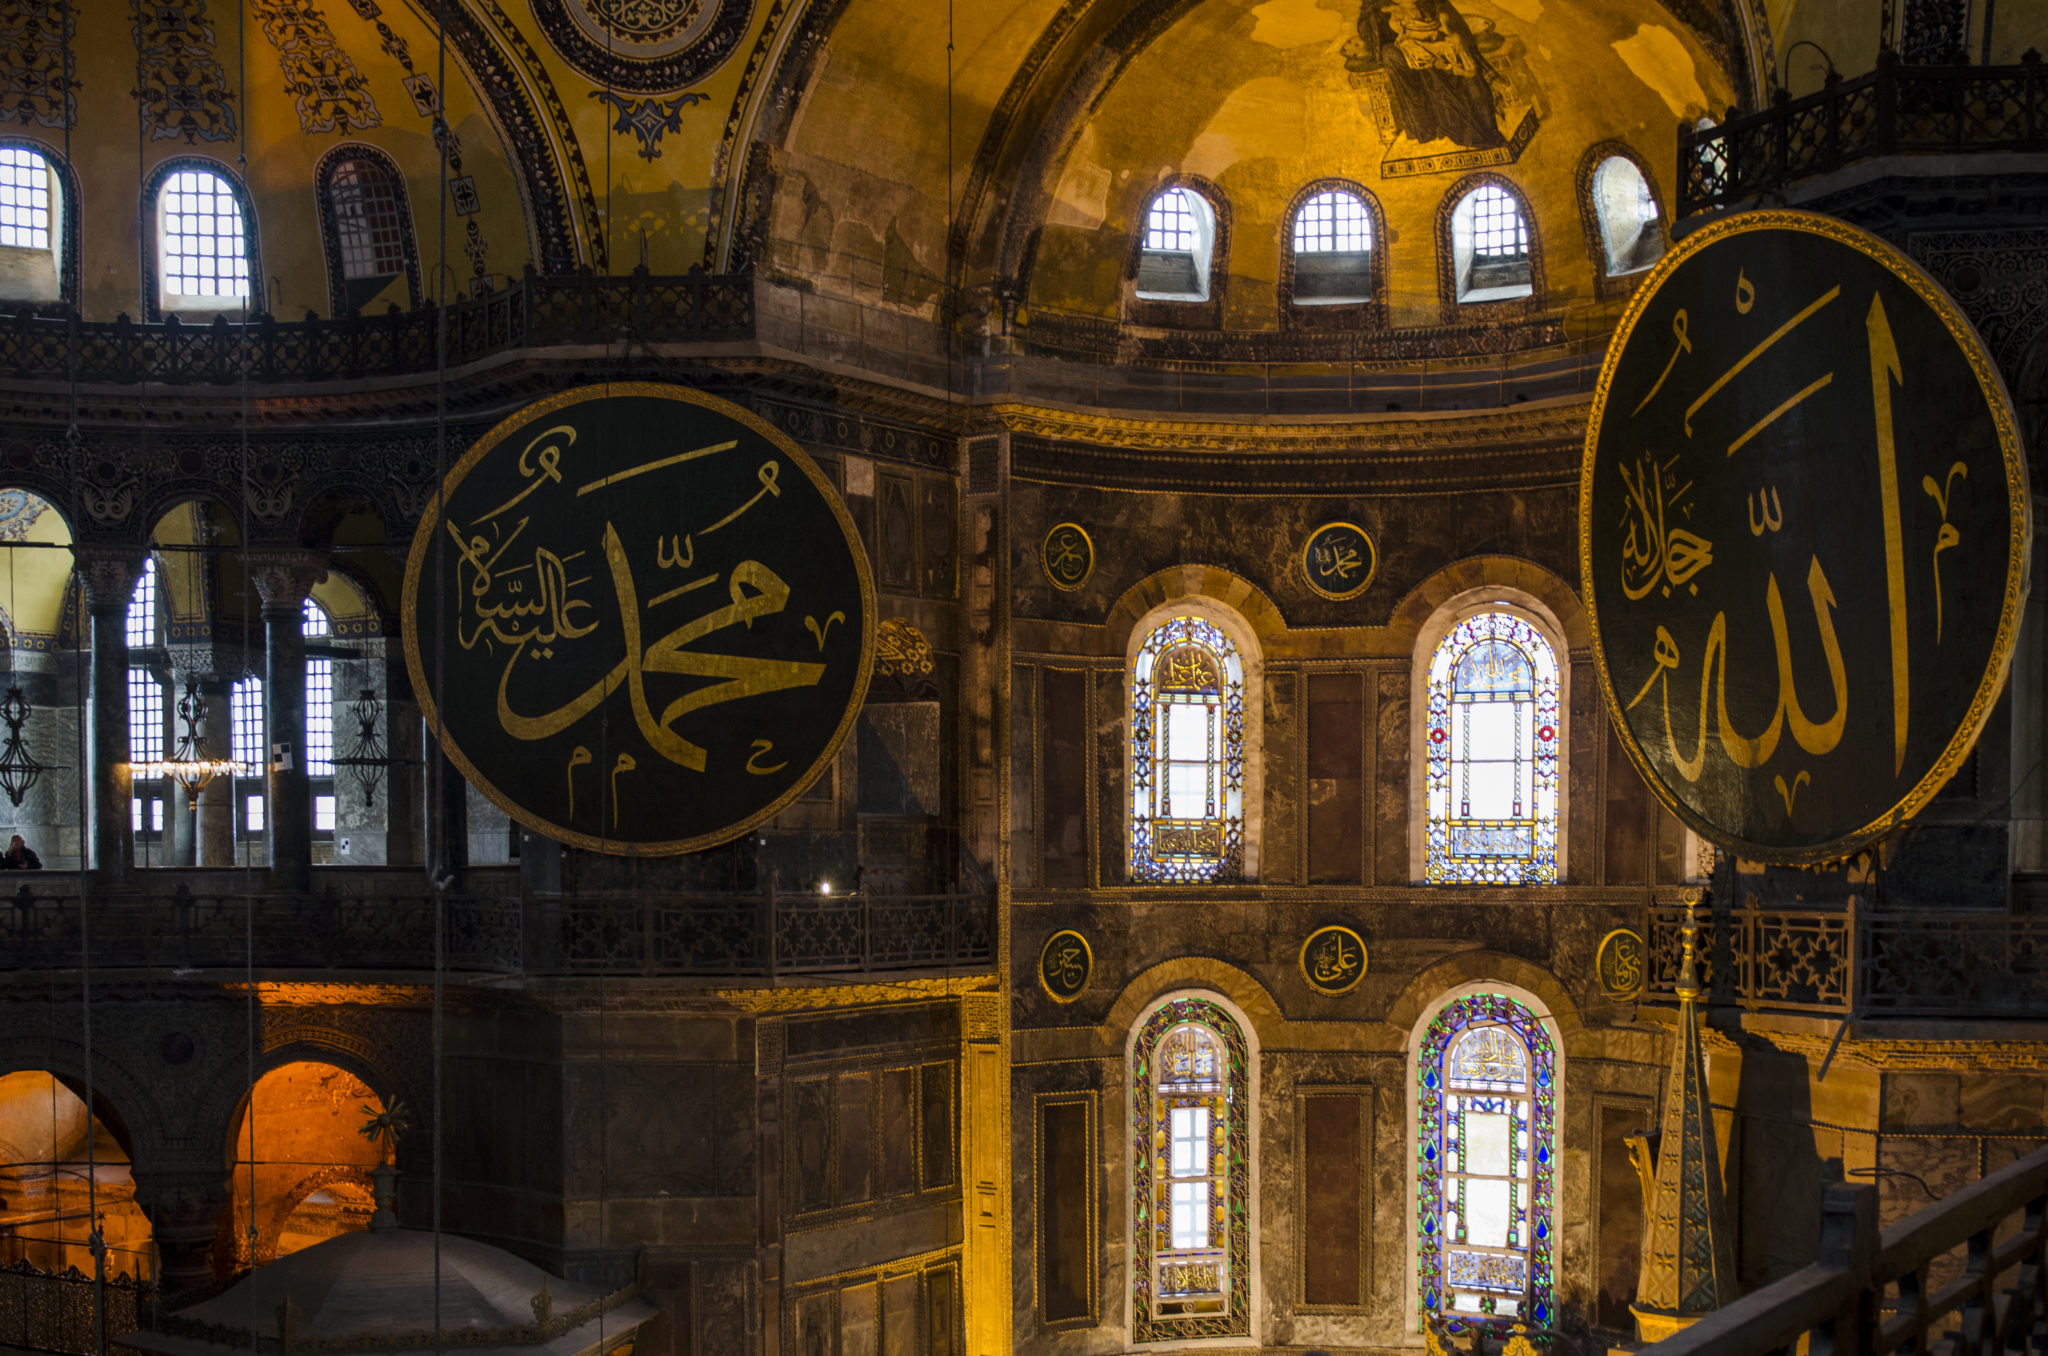 Things-to-do-in-Turkey-Mosque-Haghia-Sophia-Religion